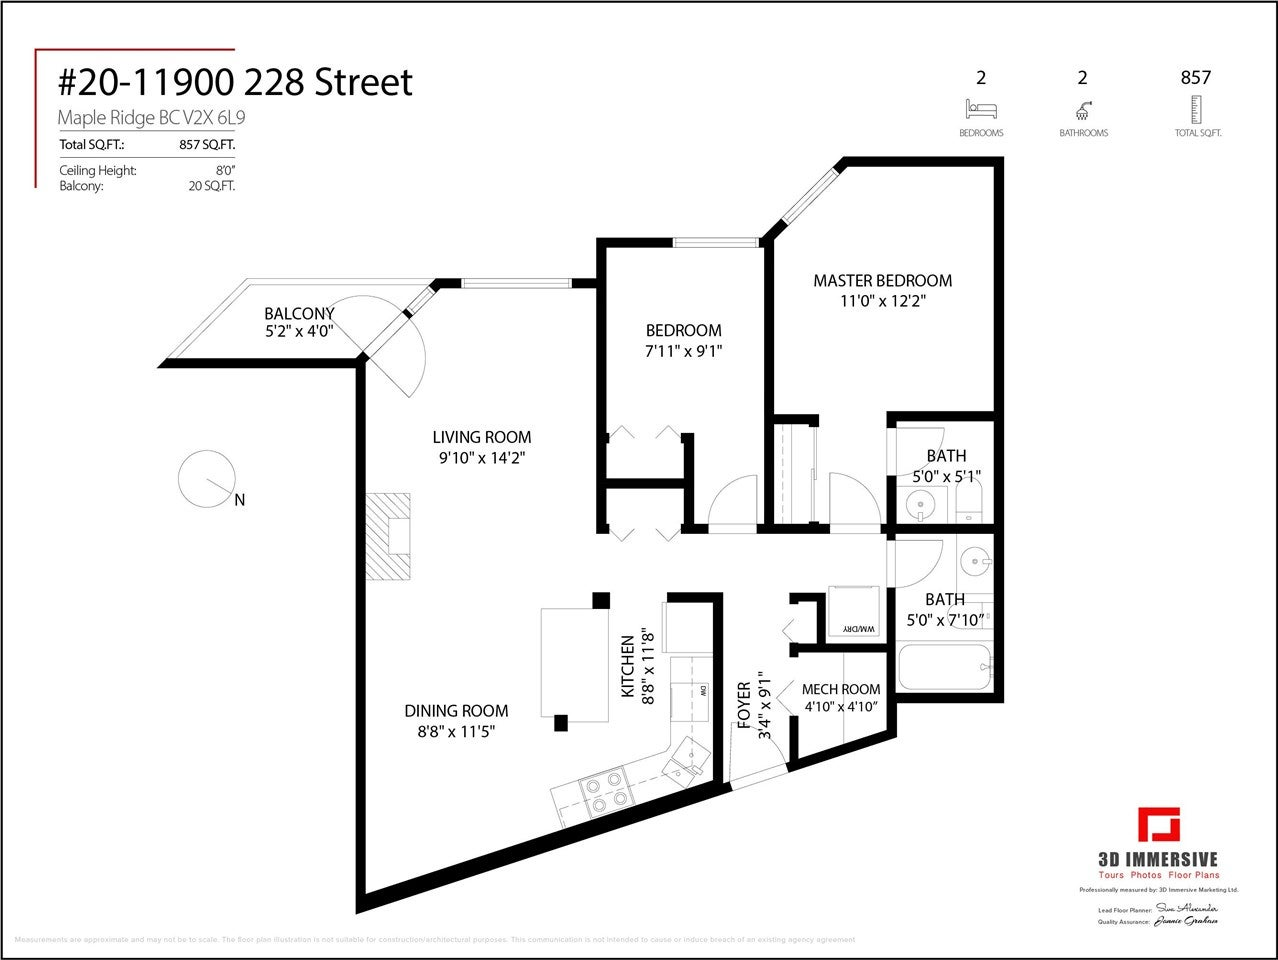 20 11900 228 STREET - East Central Apartment/Condo for sale, 2 Bedrooms (R2575566) - #23